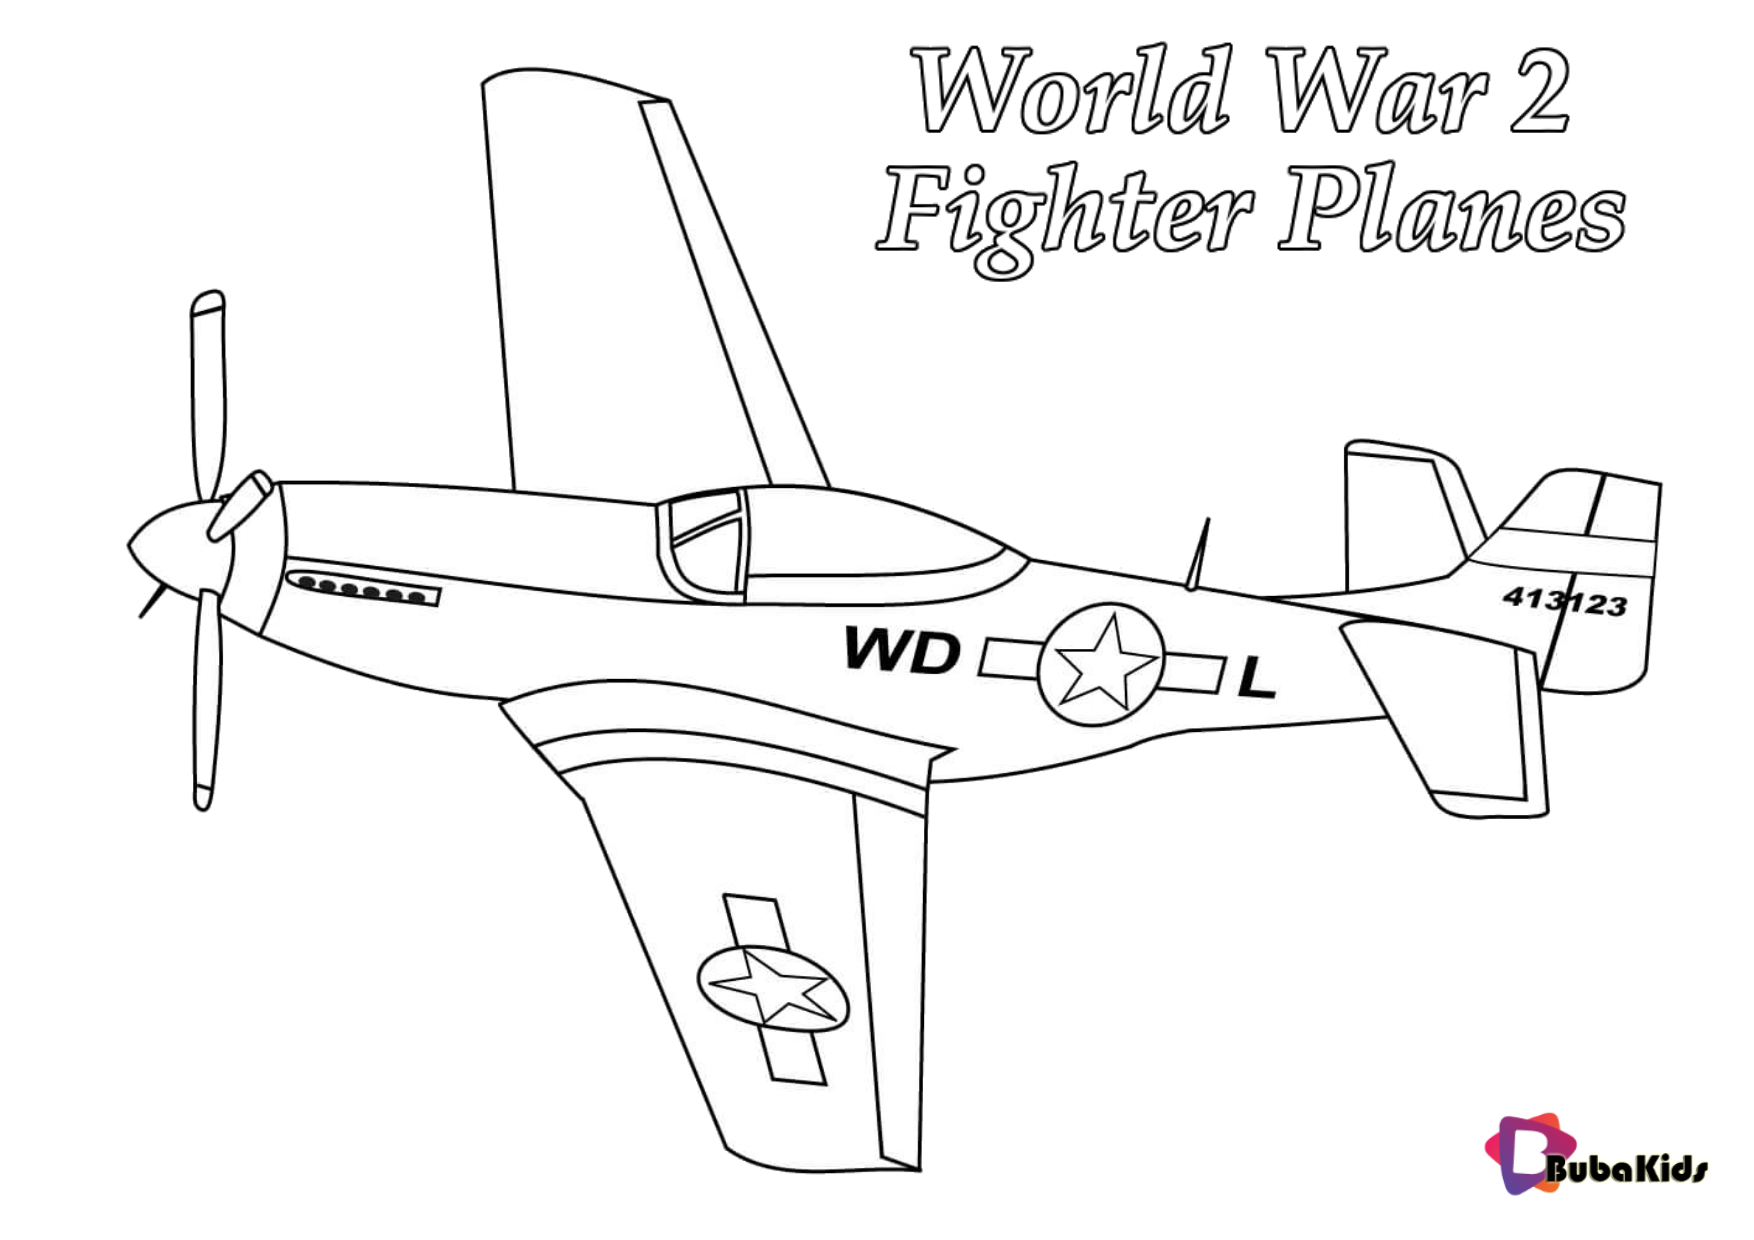 P 51 Mustang World War 2 Fighter Planes Coloring Pages Free Printable Coloring Pages For Free Printable Coloring Pages Coloring Pages Free Printable Coloring